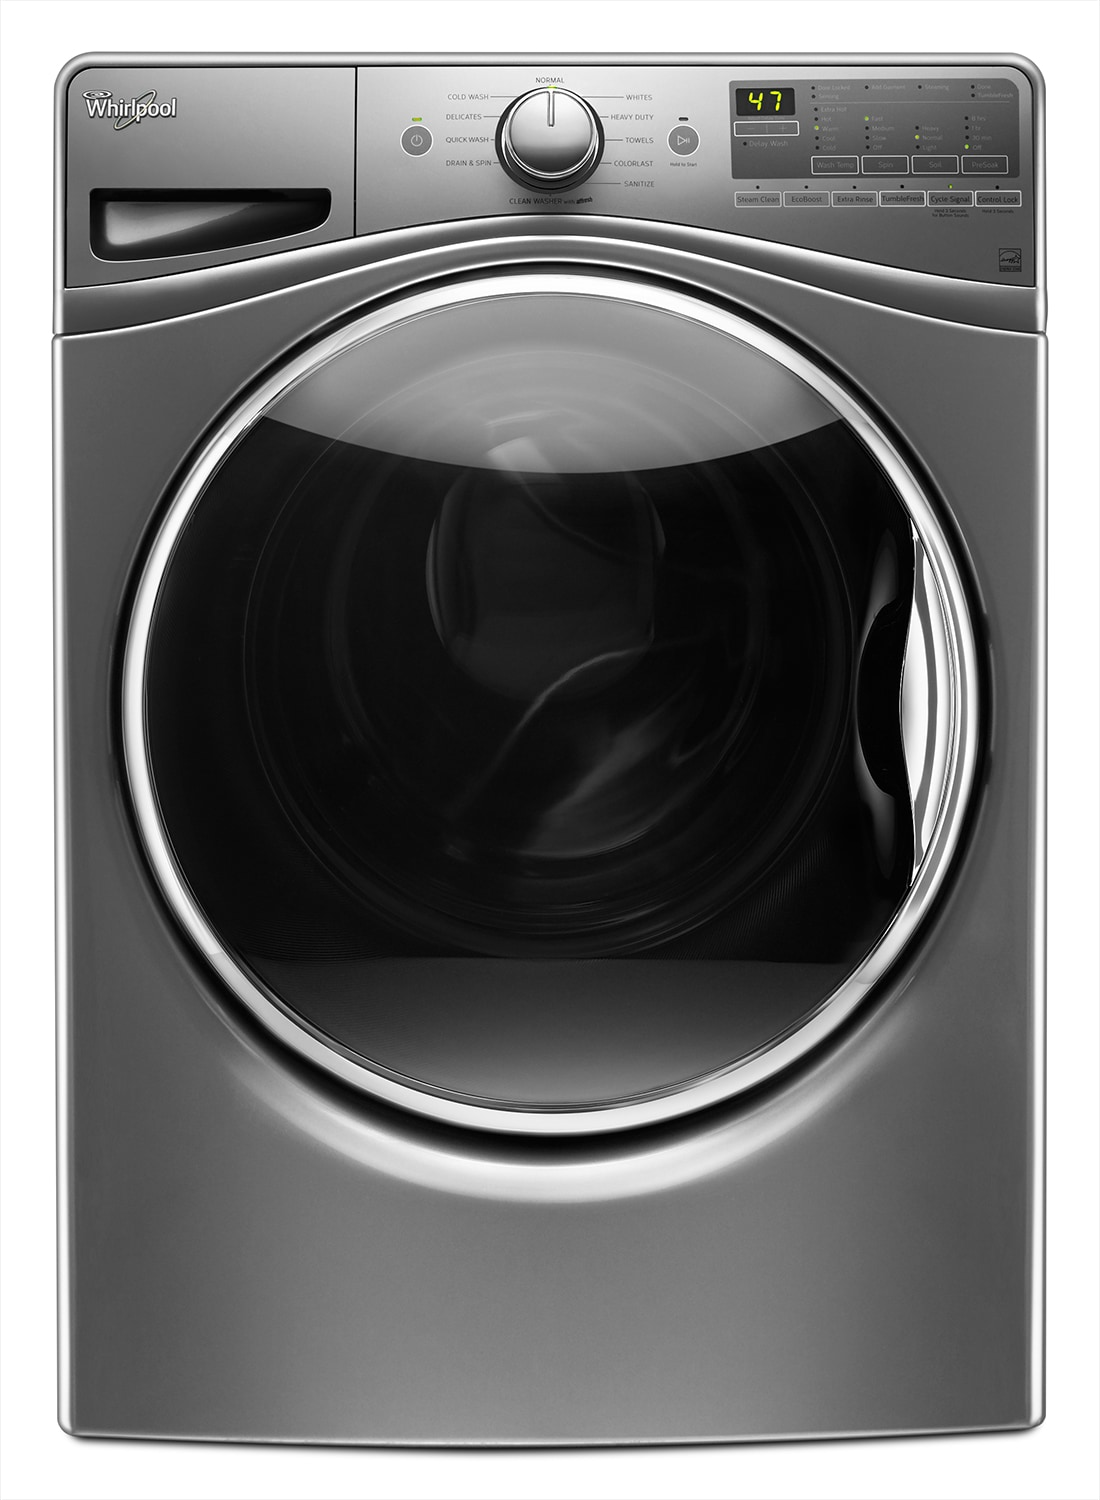 Washers and Dryers - Whirlpool Chrome Shadow Front-Load Washer (5.2 Cu. Ft. IEC) - WFW85HEFC